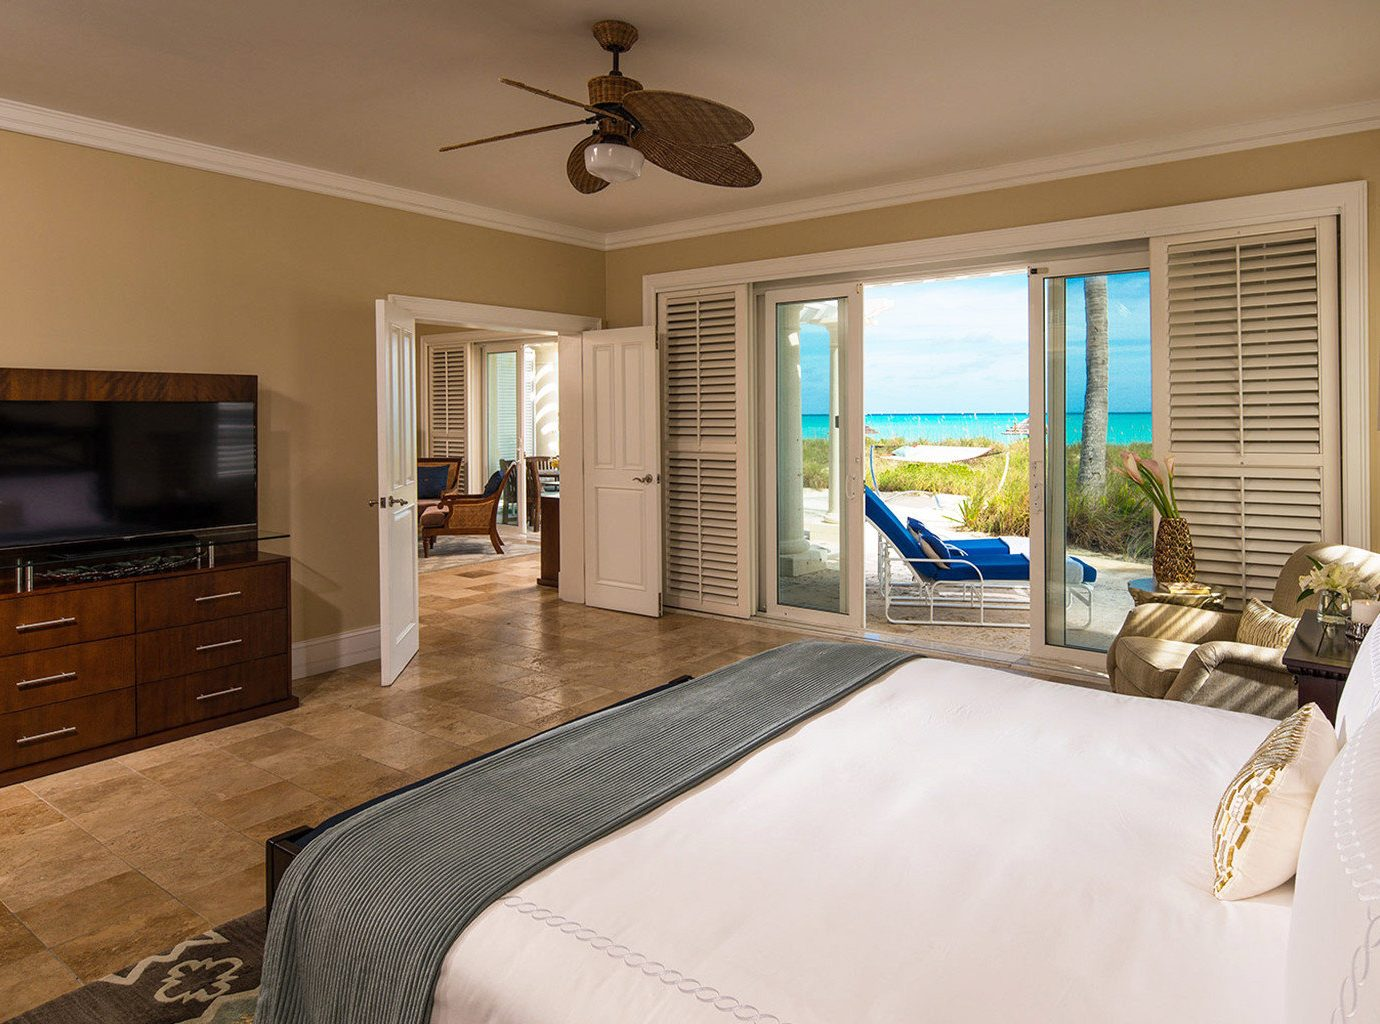 Bedroom at Sandals Emerald Bay